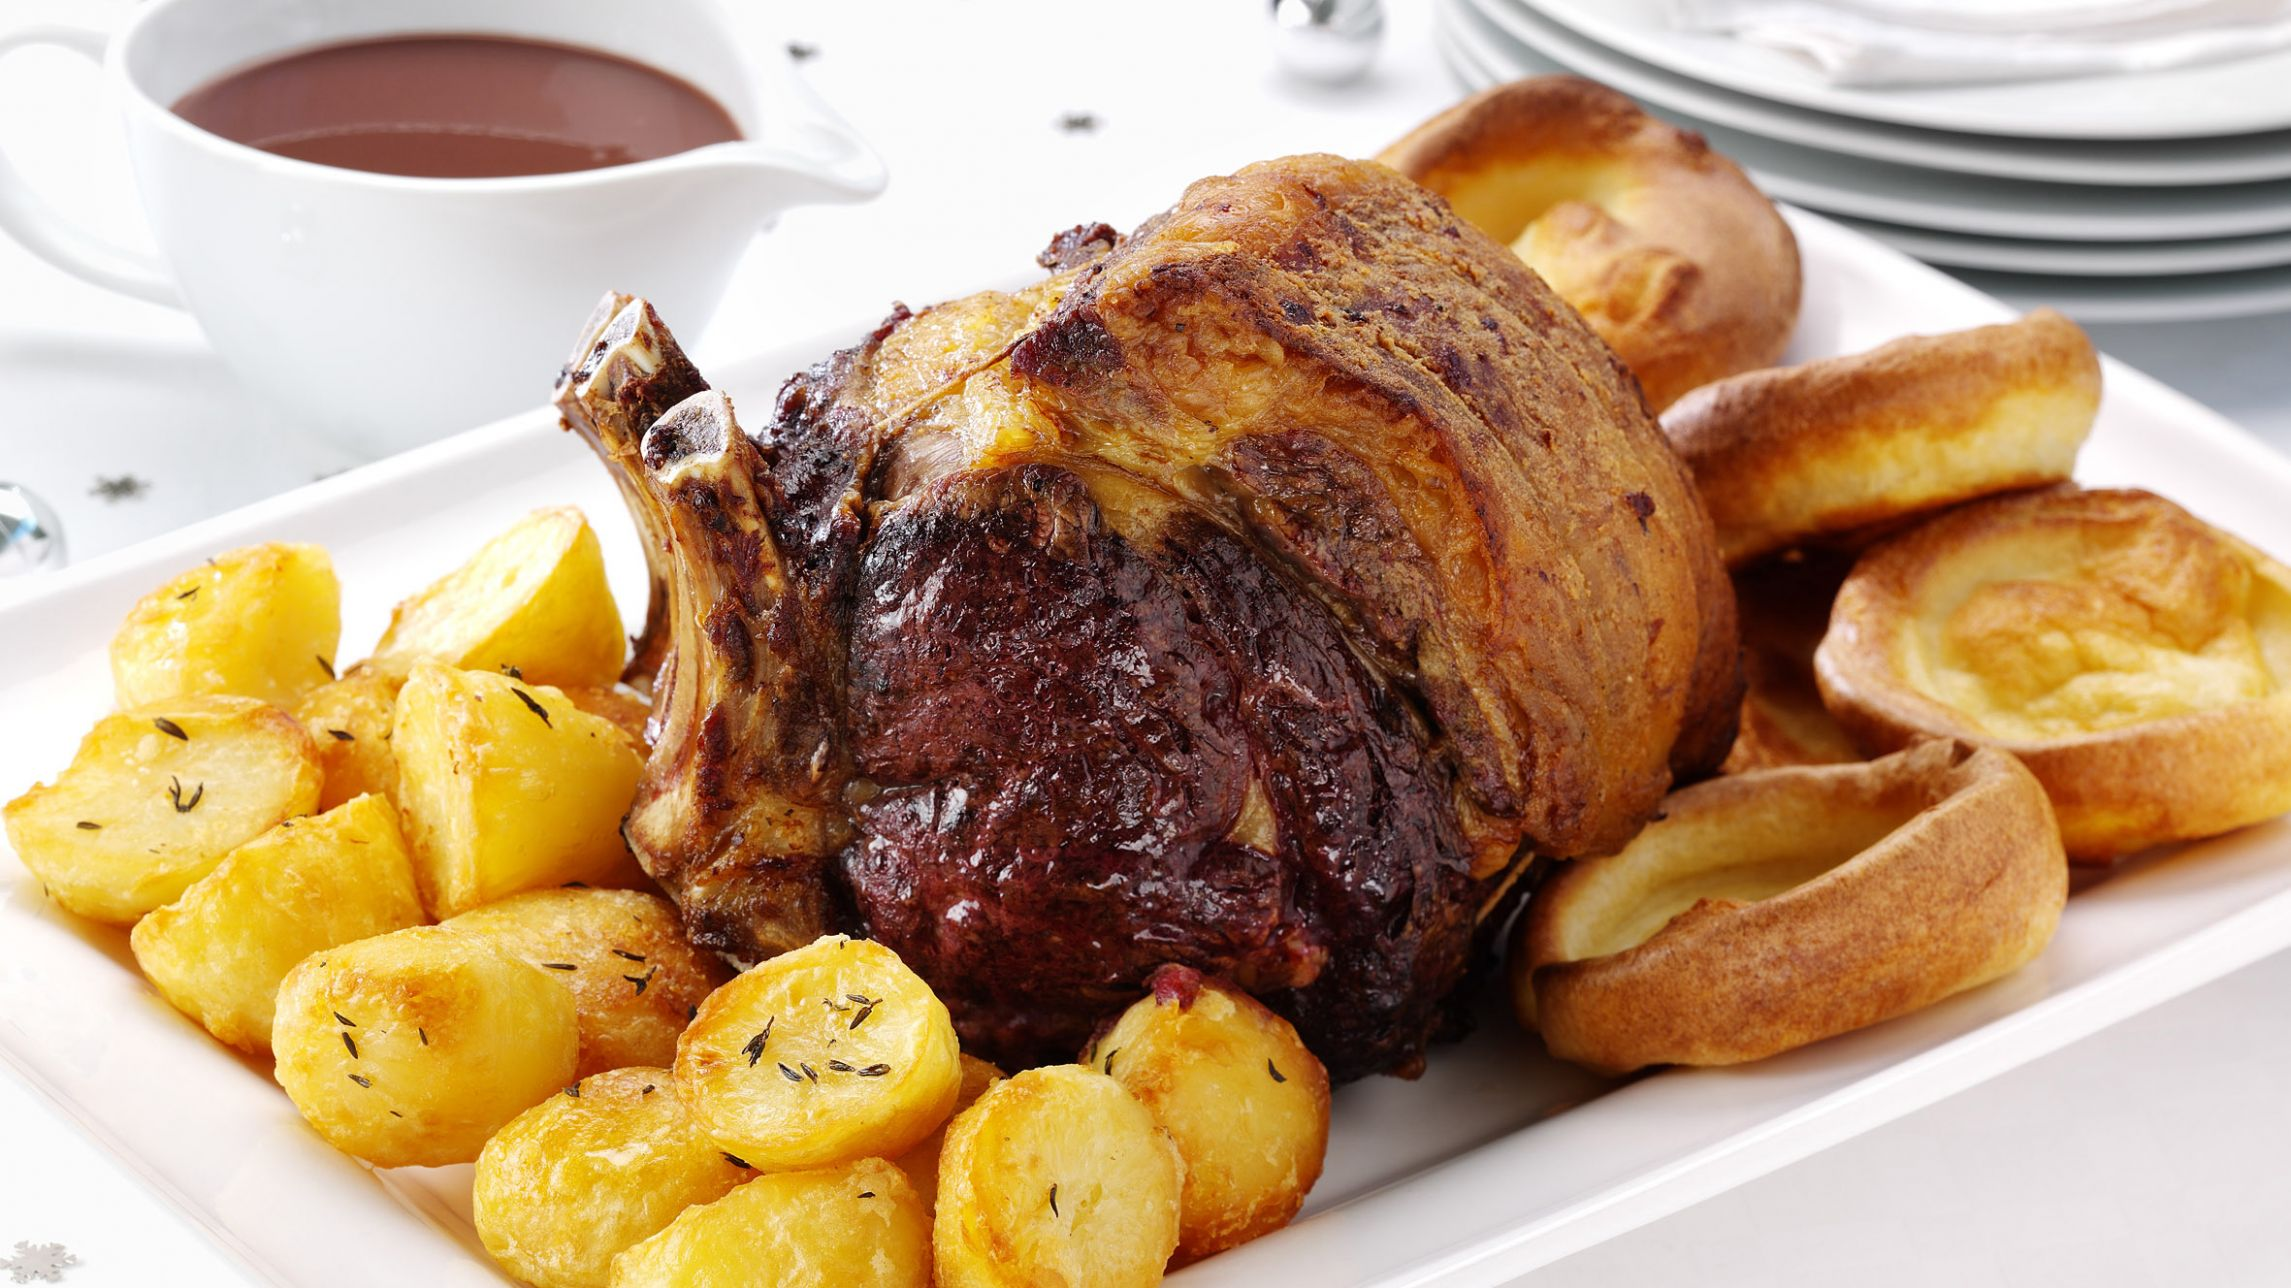 Roast beef with Yorkshire puddings, roast potatoes and gravy - Dinner Recipes Roast Beef